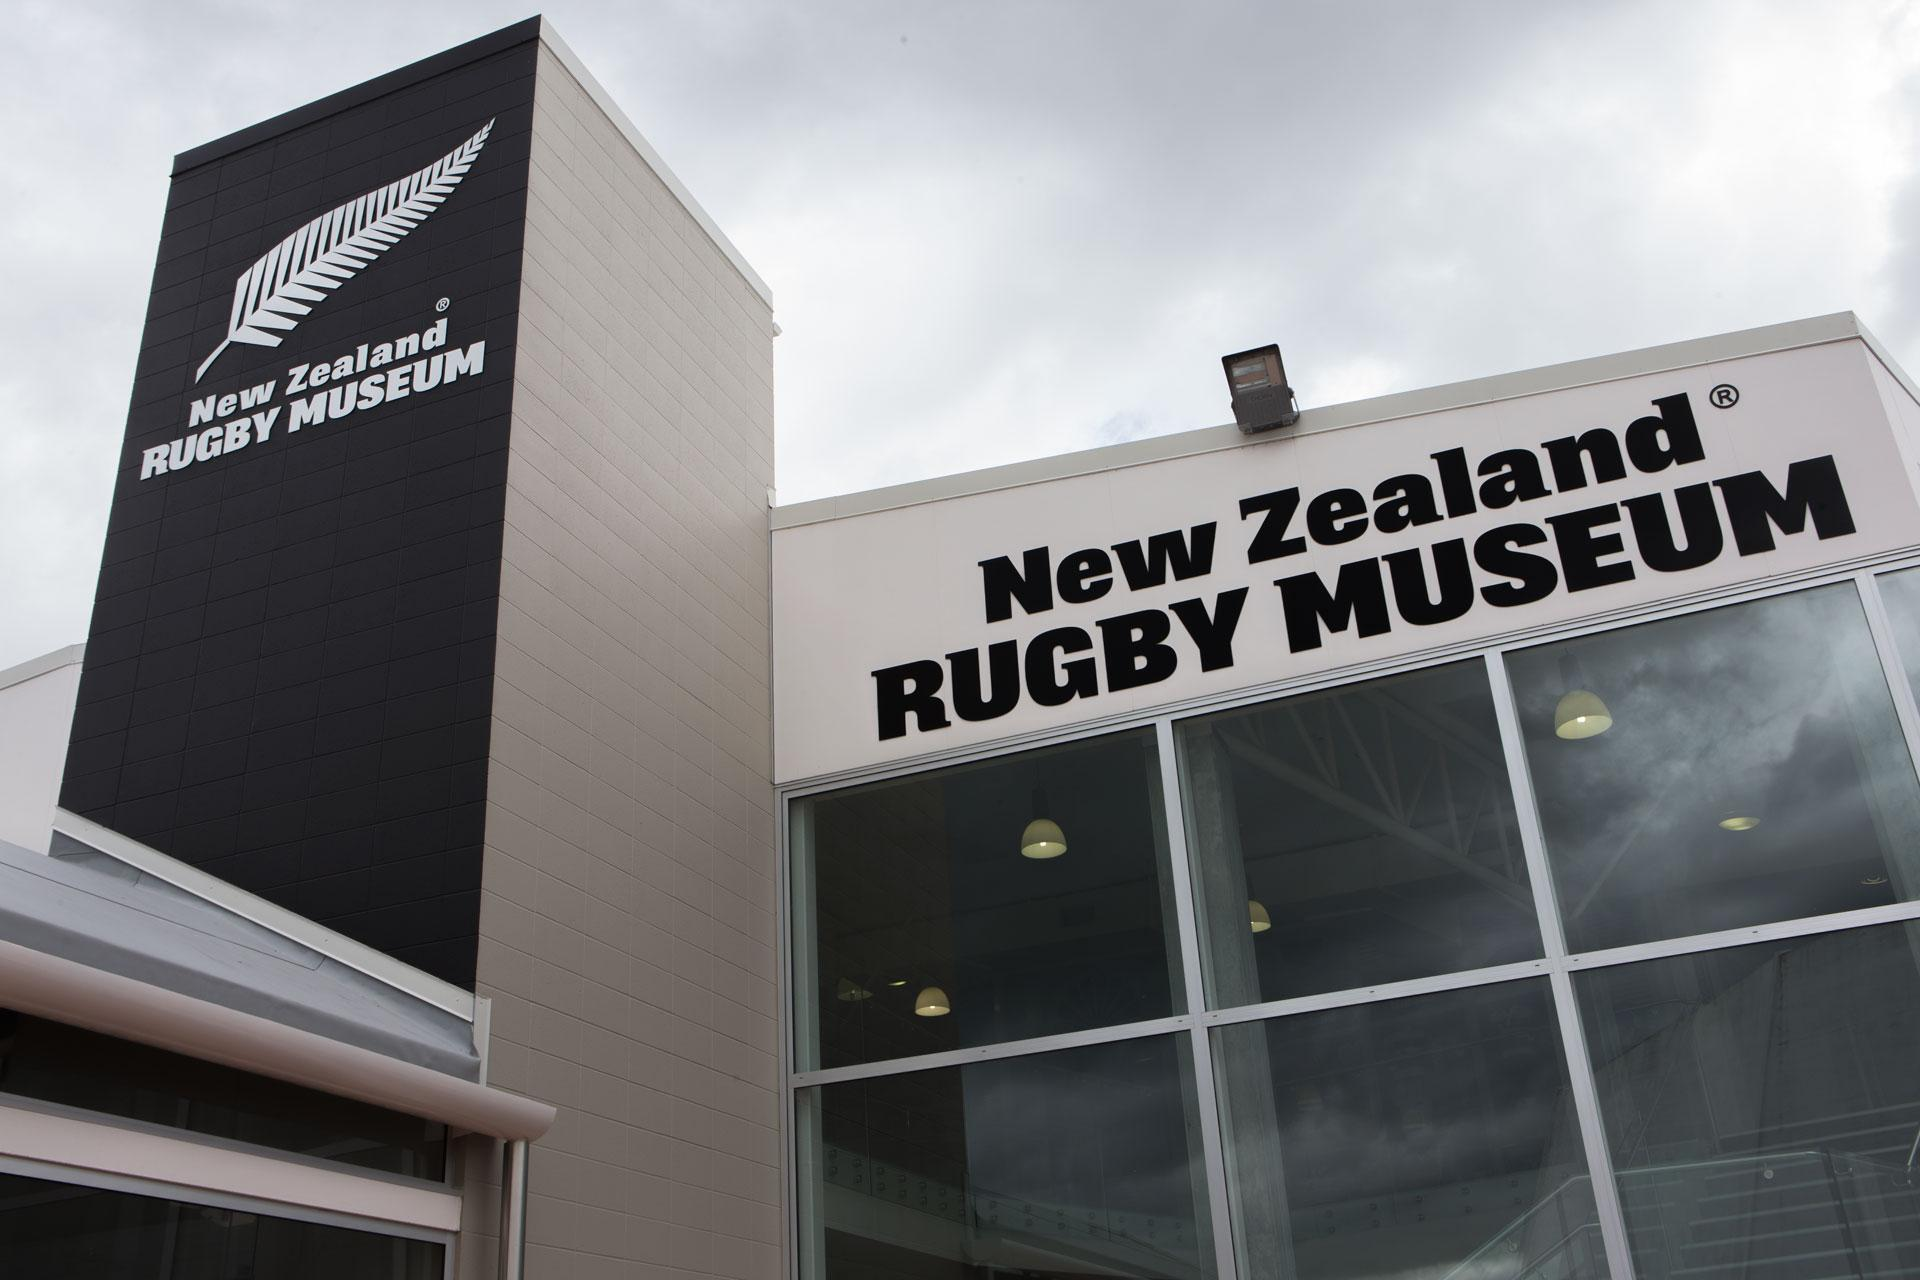 NZ Rugby Museum Branding & Signage image